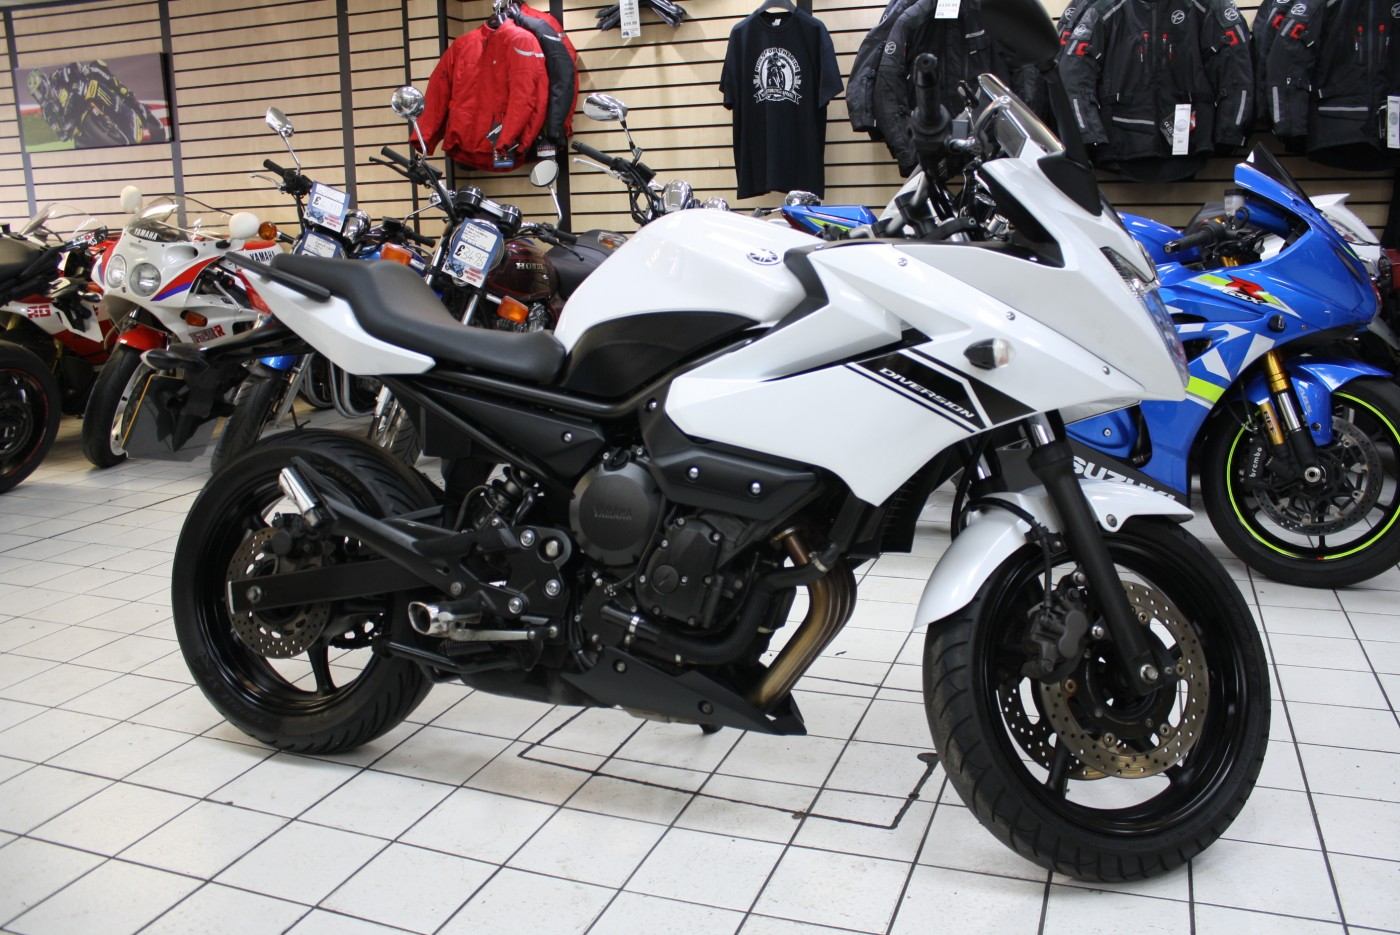 Yamaha XJ 600 Diversion 2015 White 14461 Miles